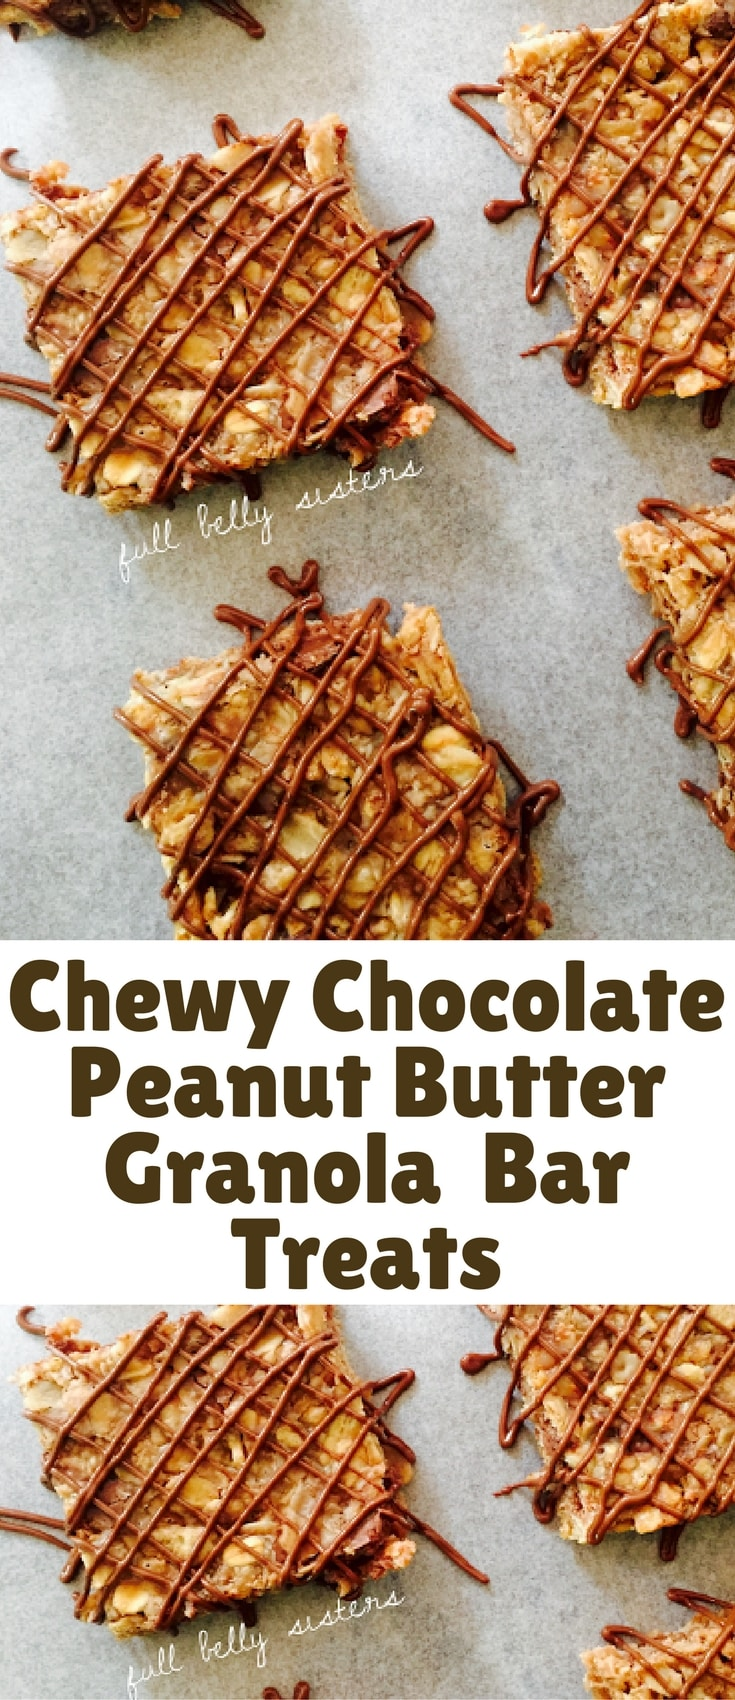 My Chewy Chocolate Peanut Butter Granola Bar Treats are simple to make, delicious, and gluten-free.